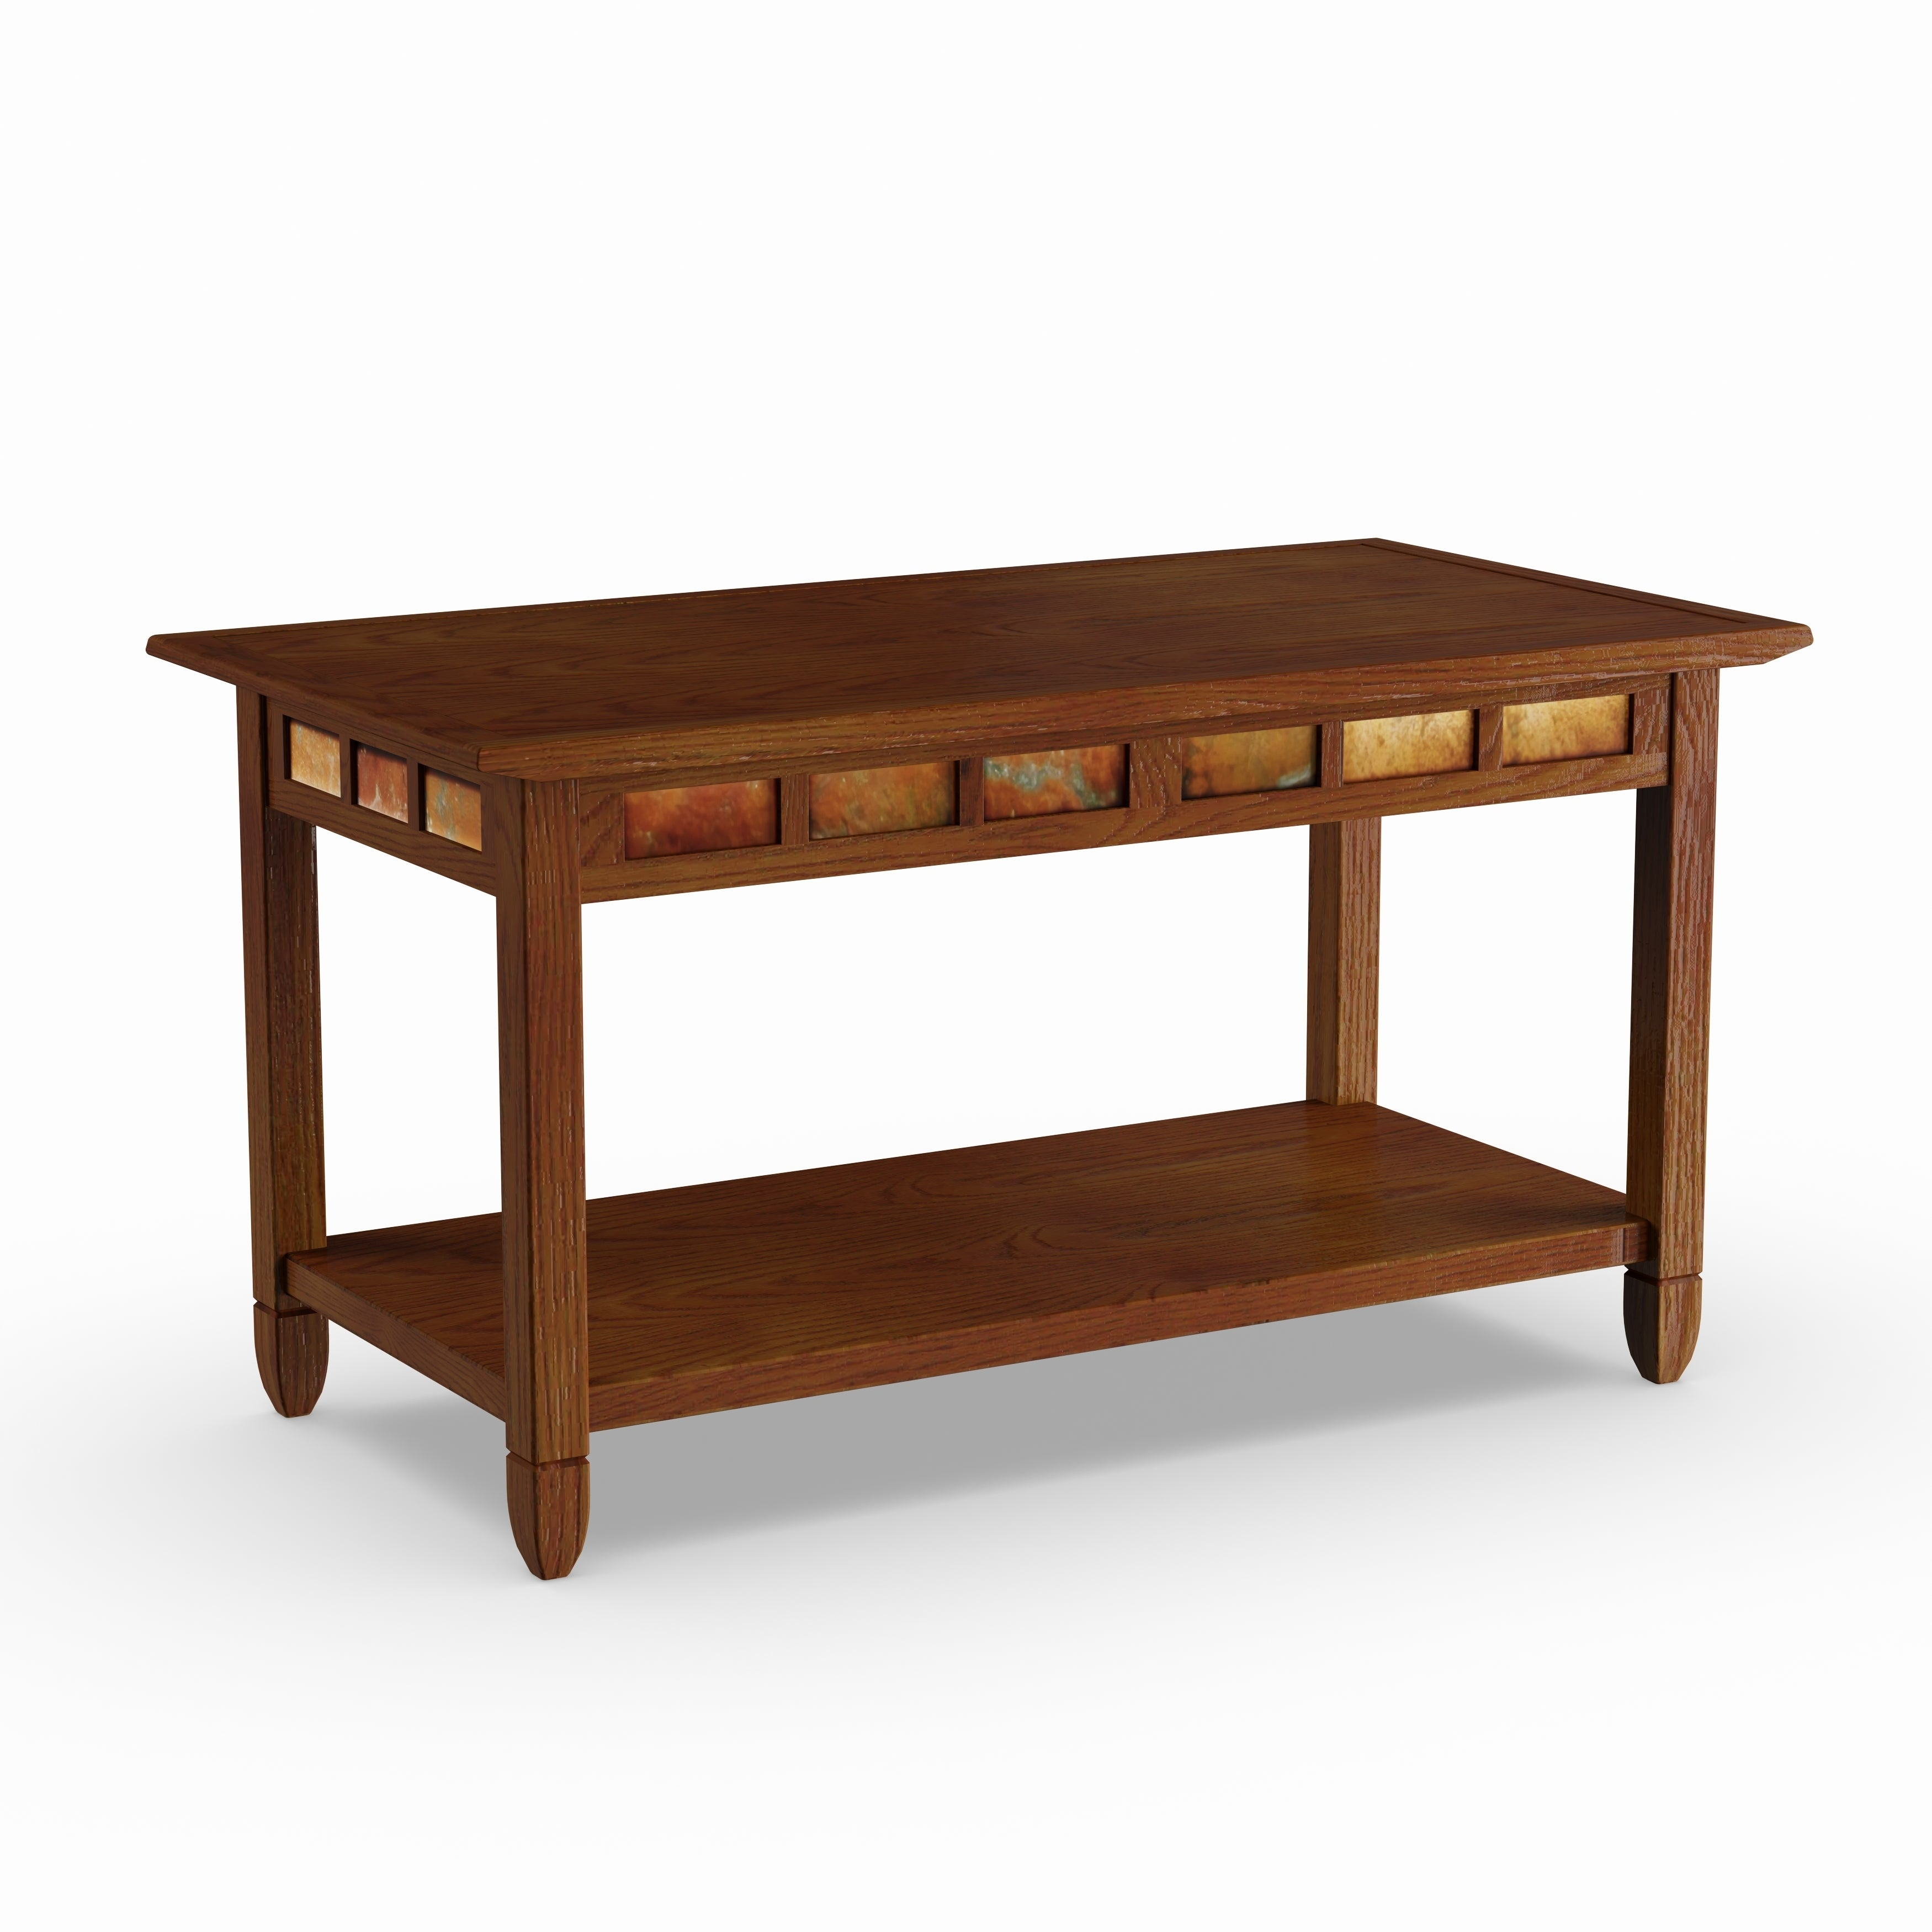 Pine Canopy Ixia Rustic Oak And Slate Tile Coffee Table Free Shipping Today 6483860